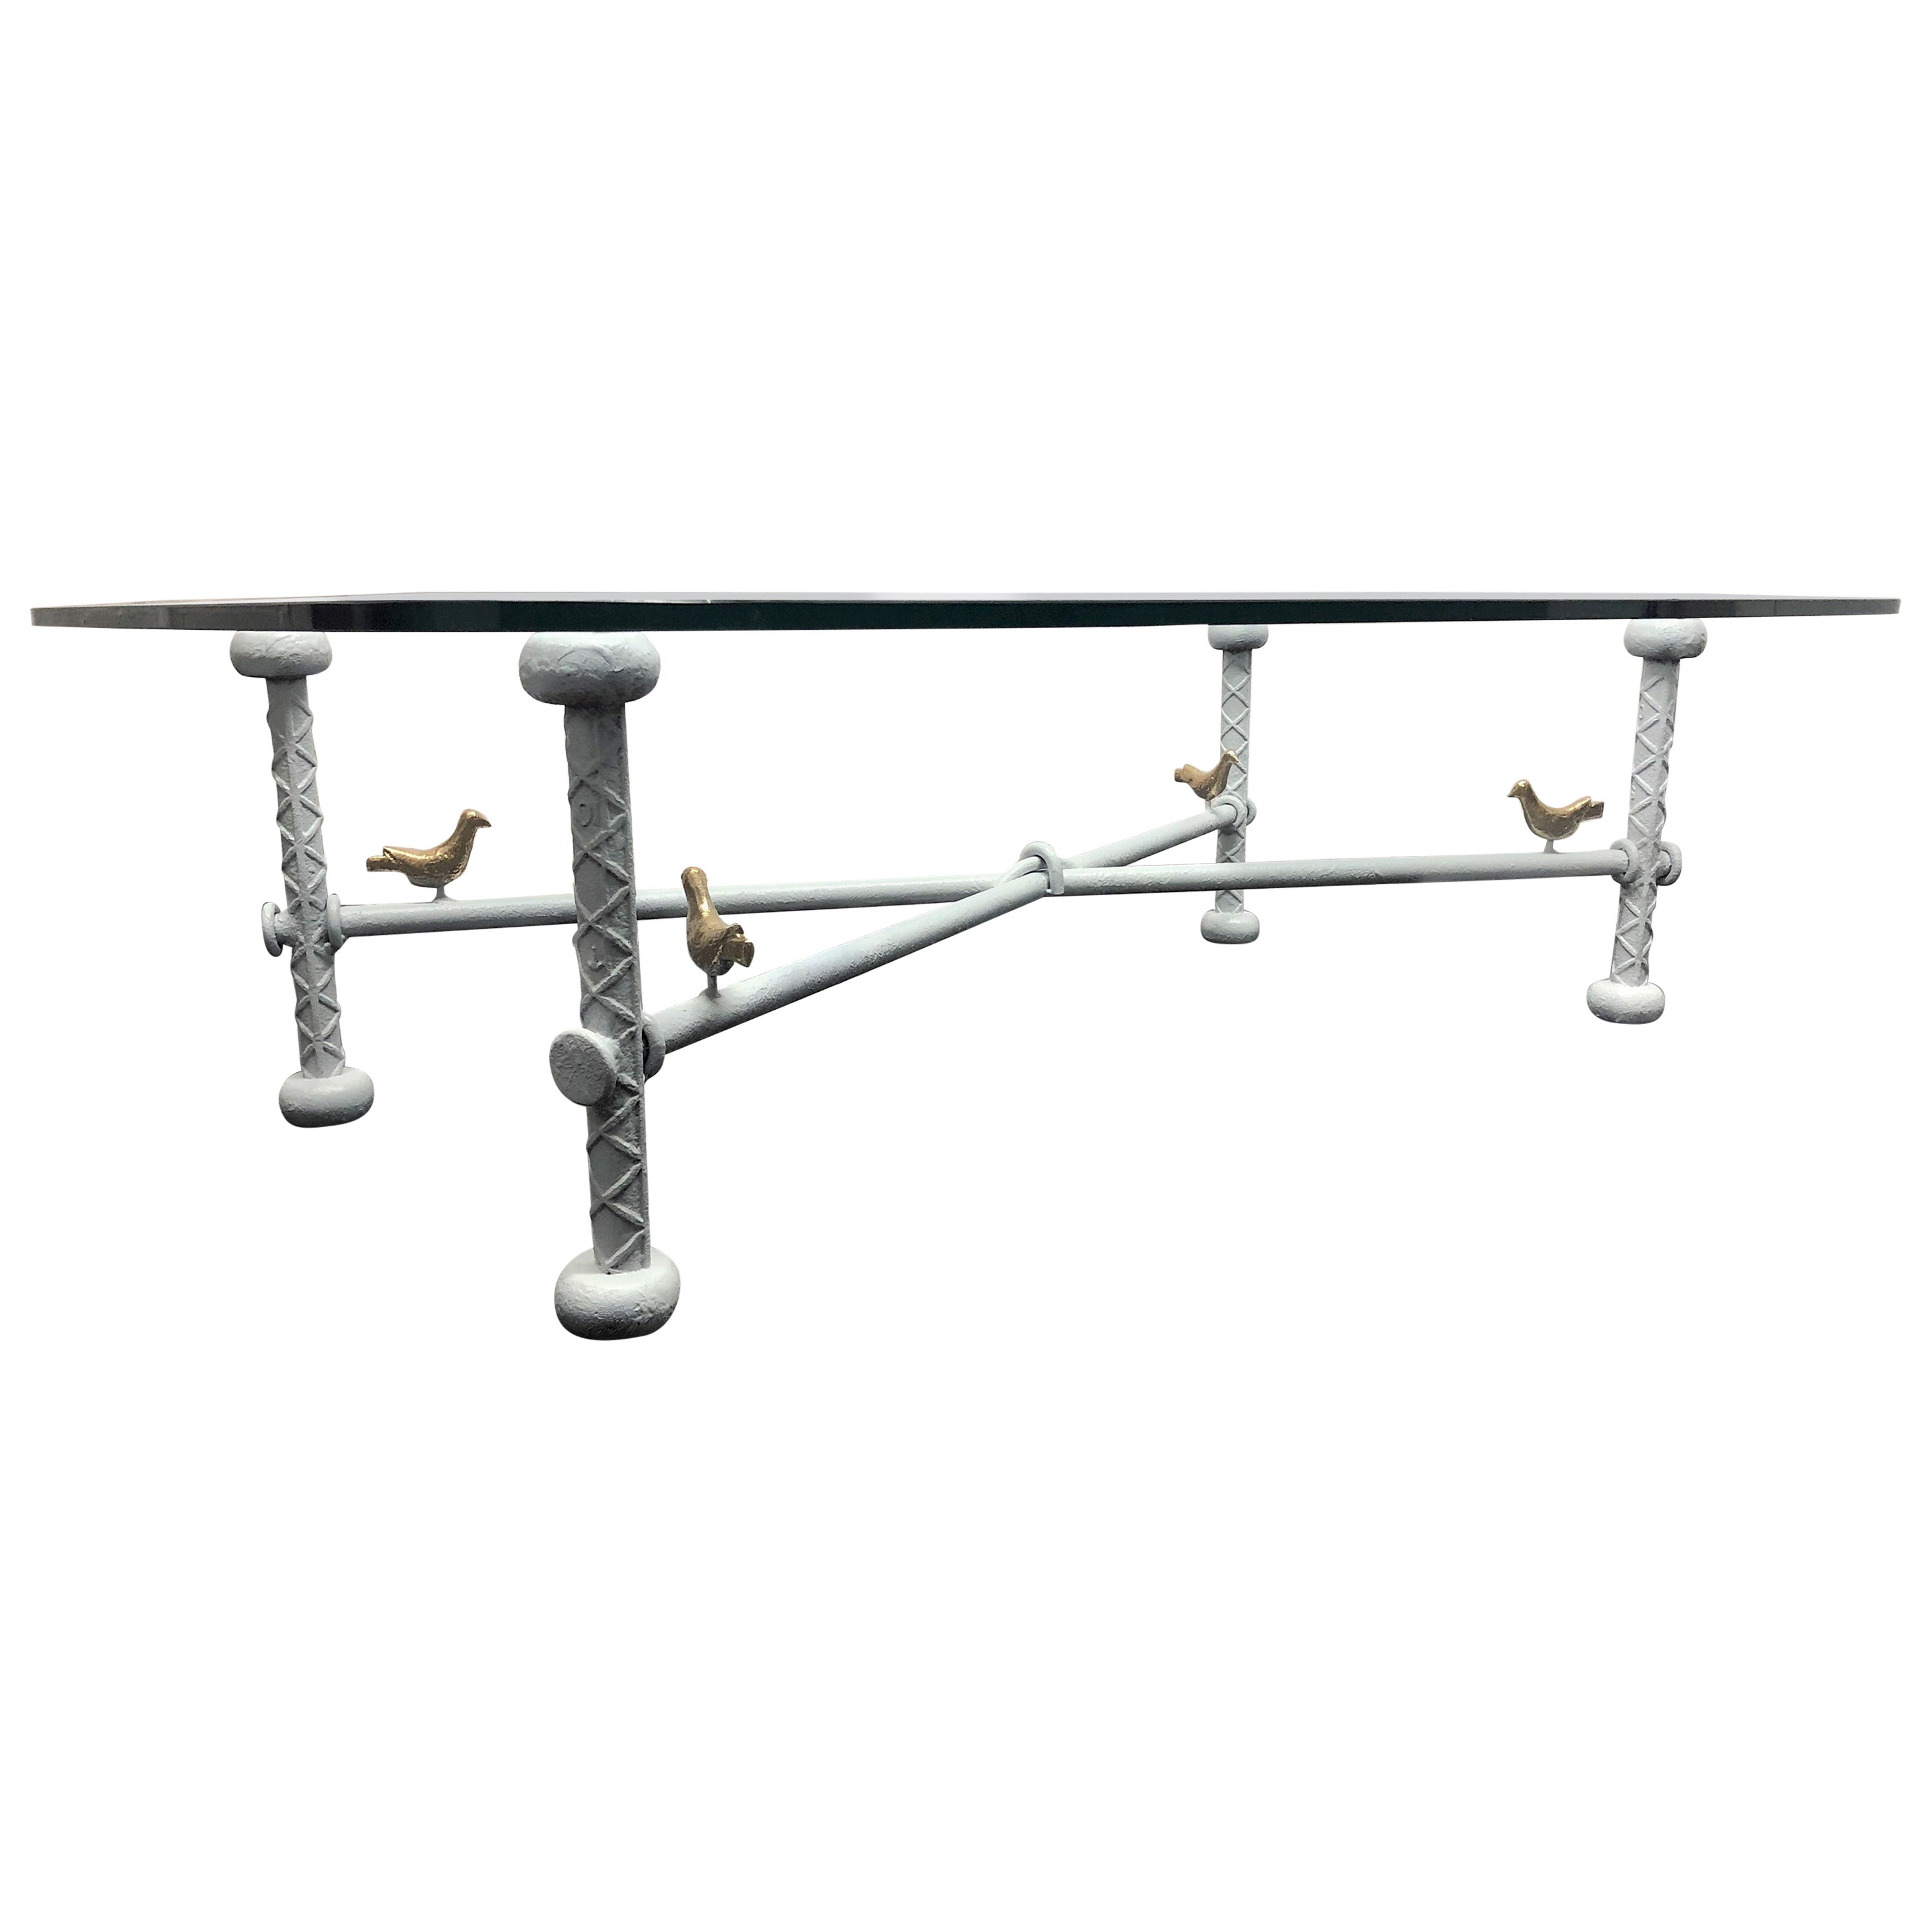 Iron and Glass Brutalist Coffee Table Style of Ilana Goor